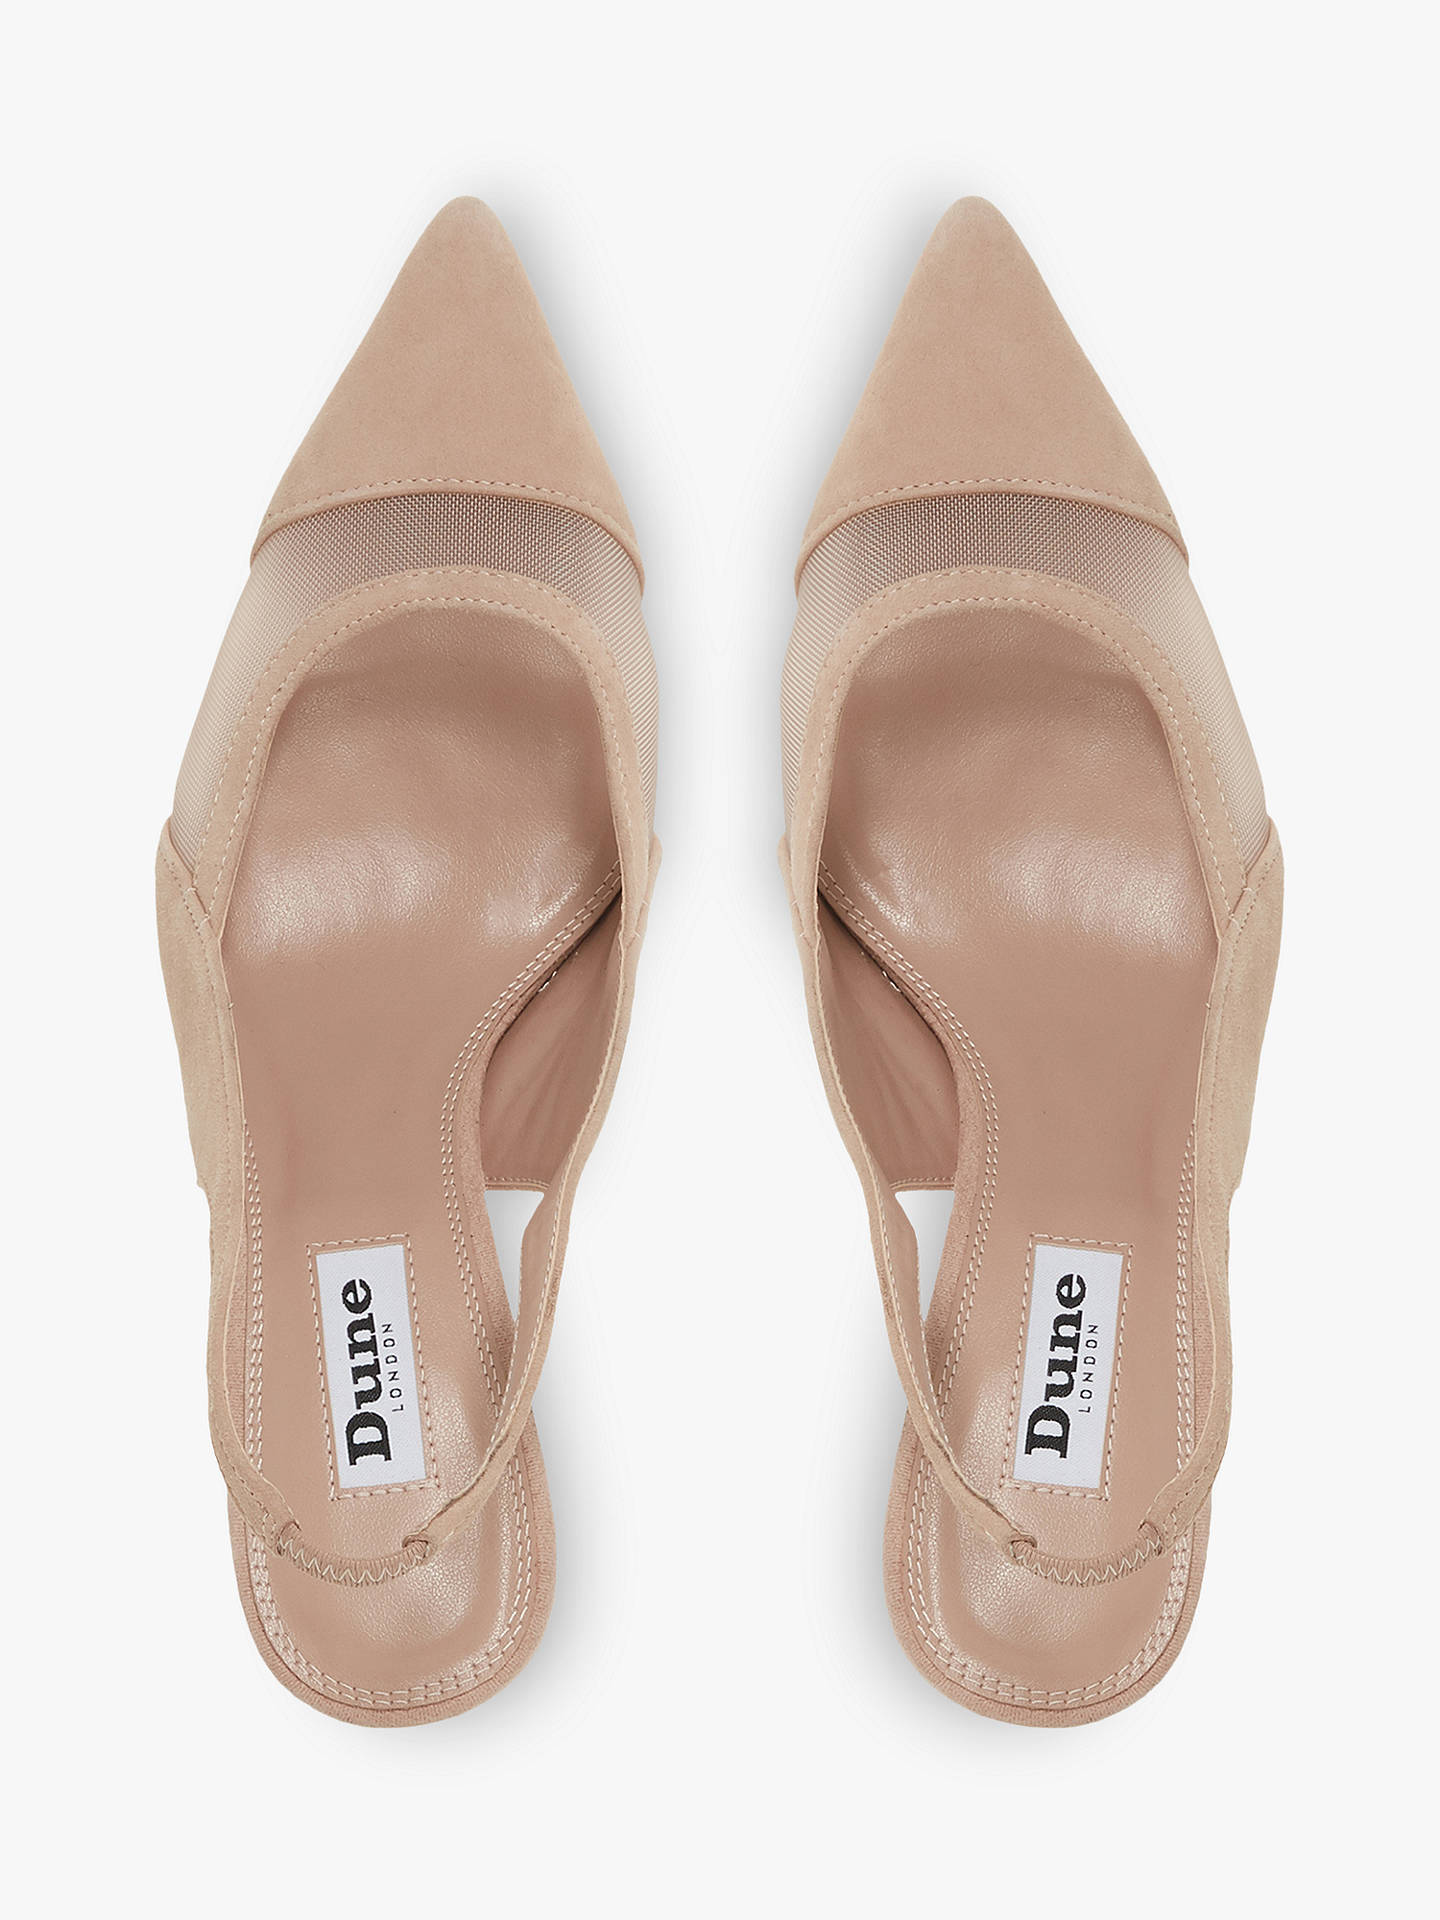 Dune Cathy Slingback High Heel Court Shoes, Nude Patent at